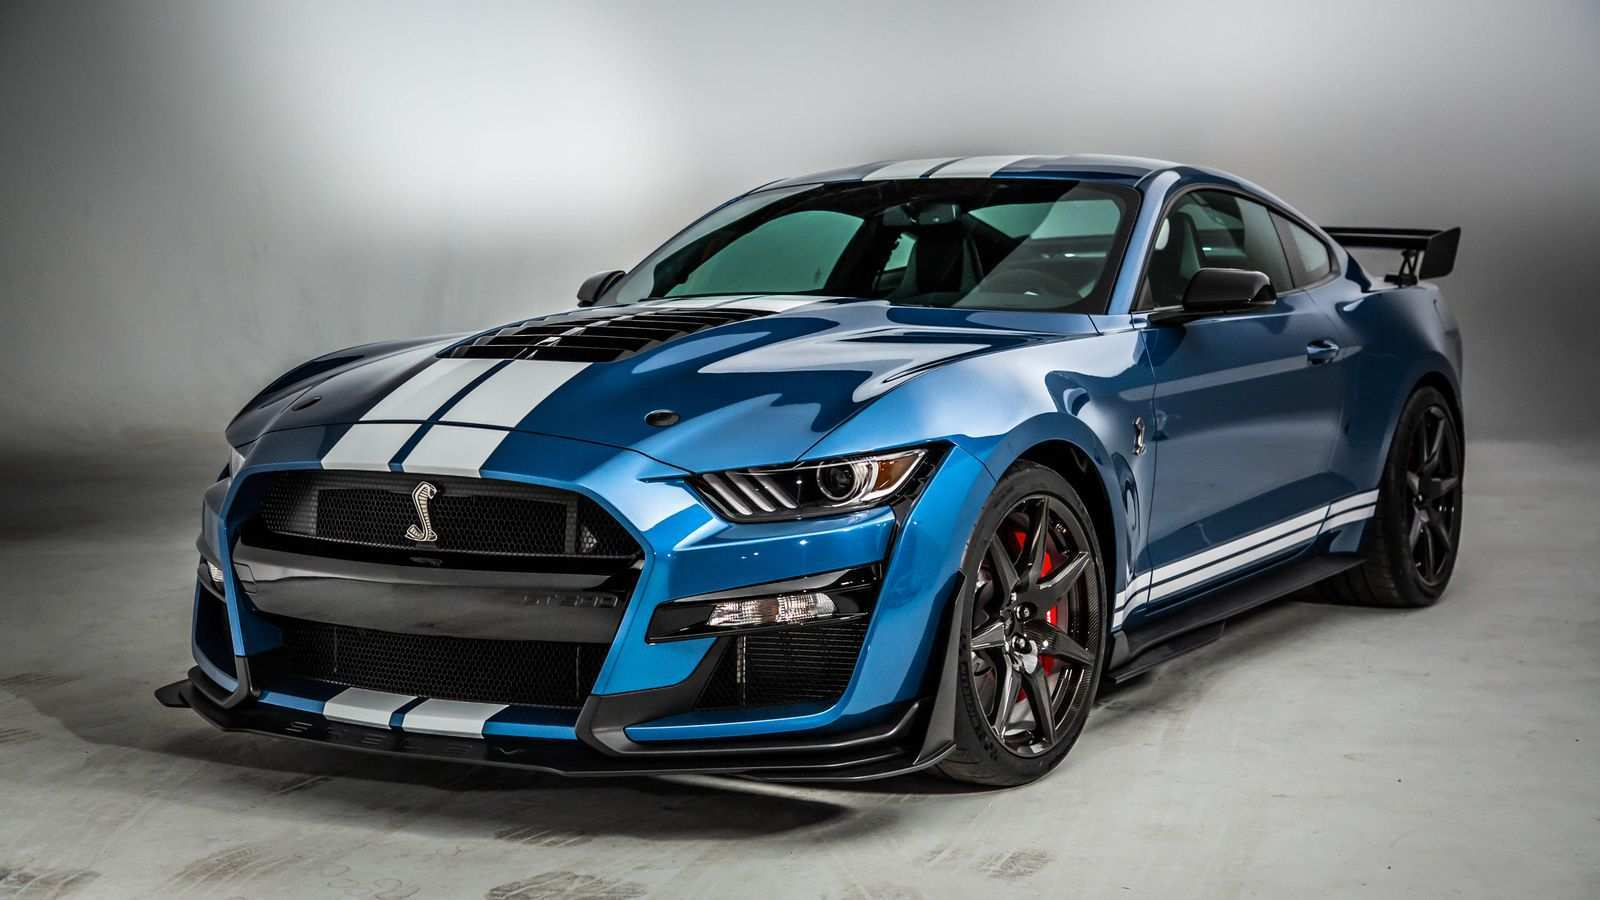 29 The 2020 Mustang Gt500 First Drive with 2020 Mustang Gt500